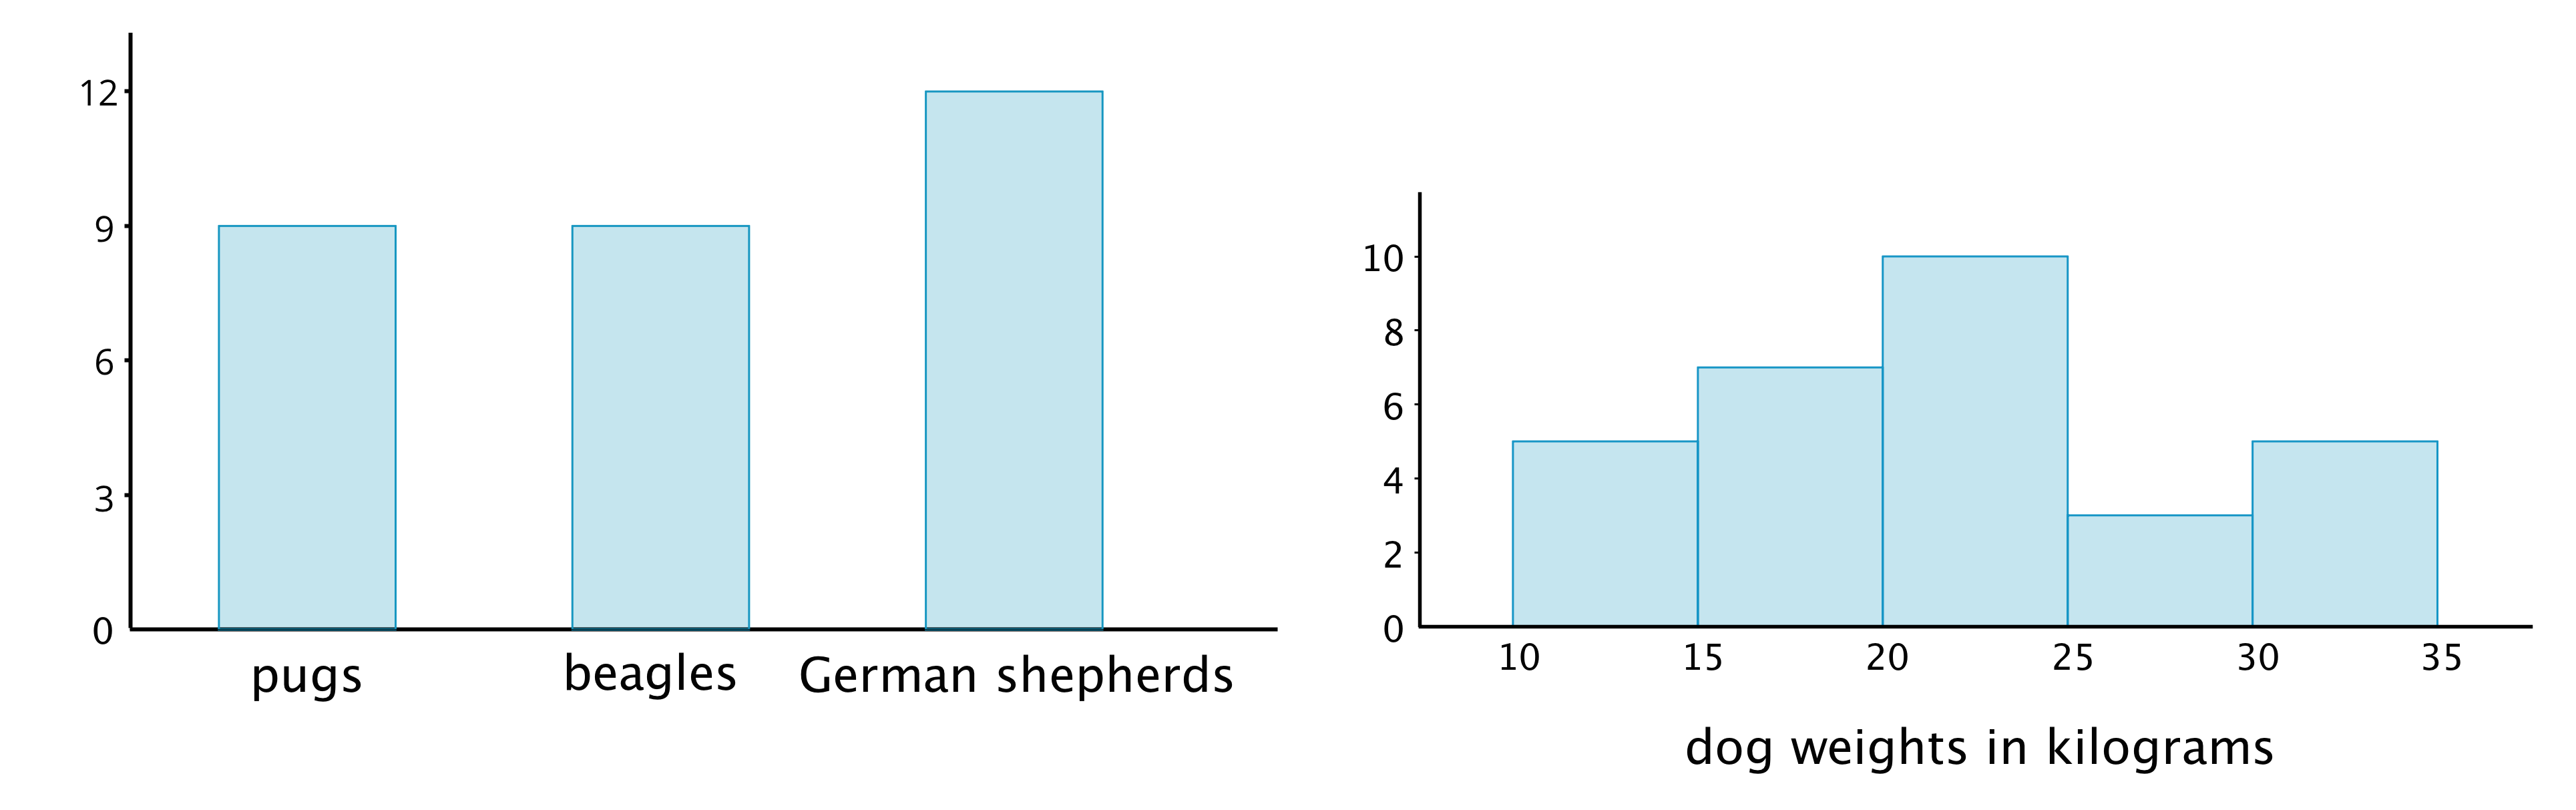 "A bar graph and a histogram. The bar graph has three categories on the horizontal axis labeled ""pugs,"" ""beagles,"" and ""German shepherds."" The vertical axis has the numbers 0 through 12, in increments of 3, indicated. The bar labeled ""pugs"" has a height of 9. The bar labeled ""beagles"" has a height of 9"" and the bar labeled ""German shepherds"" has a height of 12. The histogram has a horizontal axis labeled ""dog weights in kilograms."" The vertical axis has the numbers 0 through 10, in increments of 2, indicated. The data represented by the bars are as follows: 10 up to 15 kilograms, 5; 15 up to 20 kilograms, 7; 20 up to 25 kilograms, 10; 25 up to 30 kilograms, 3; 30 up to 35 kilograms, 5."